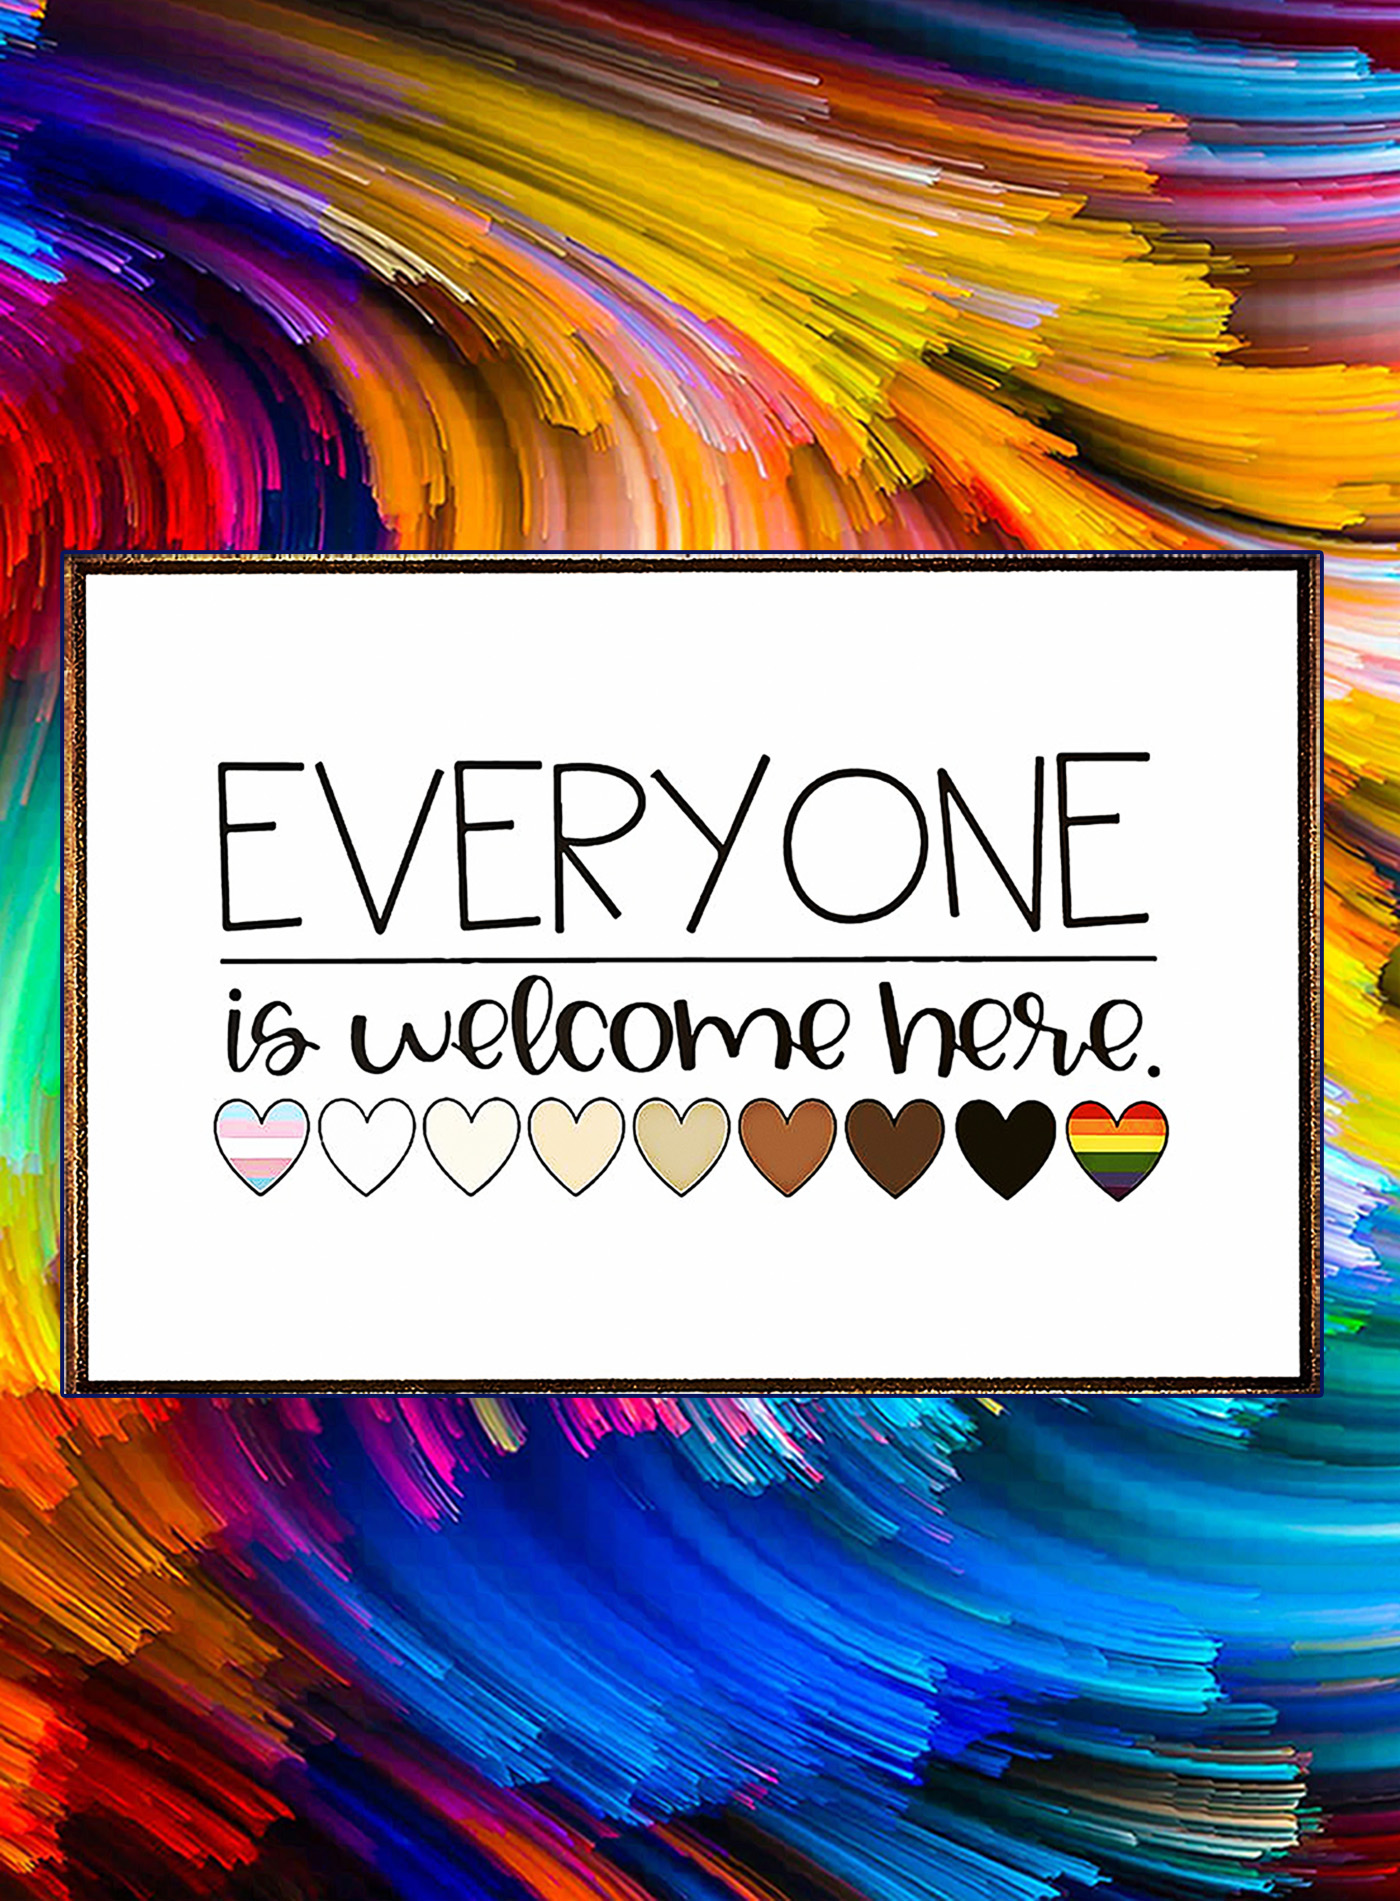 Everyone is welcome here poster - A1